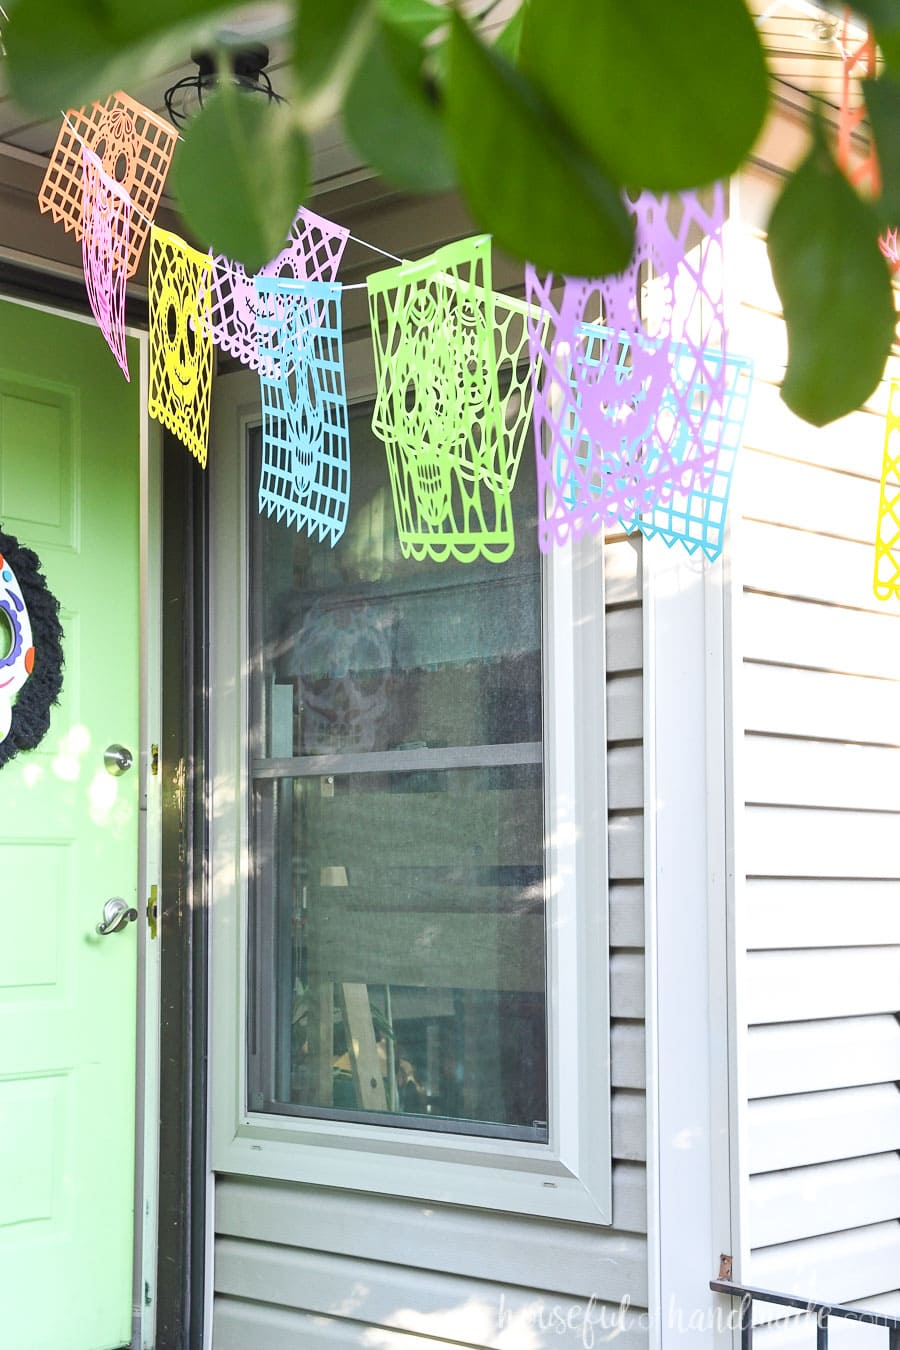 Looking toward the front door seeing the sugar skull paper banners hanging over the porch.